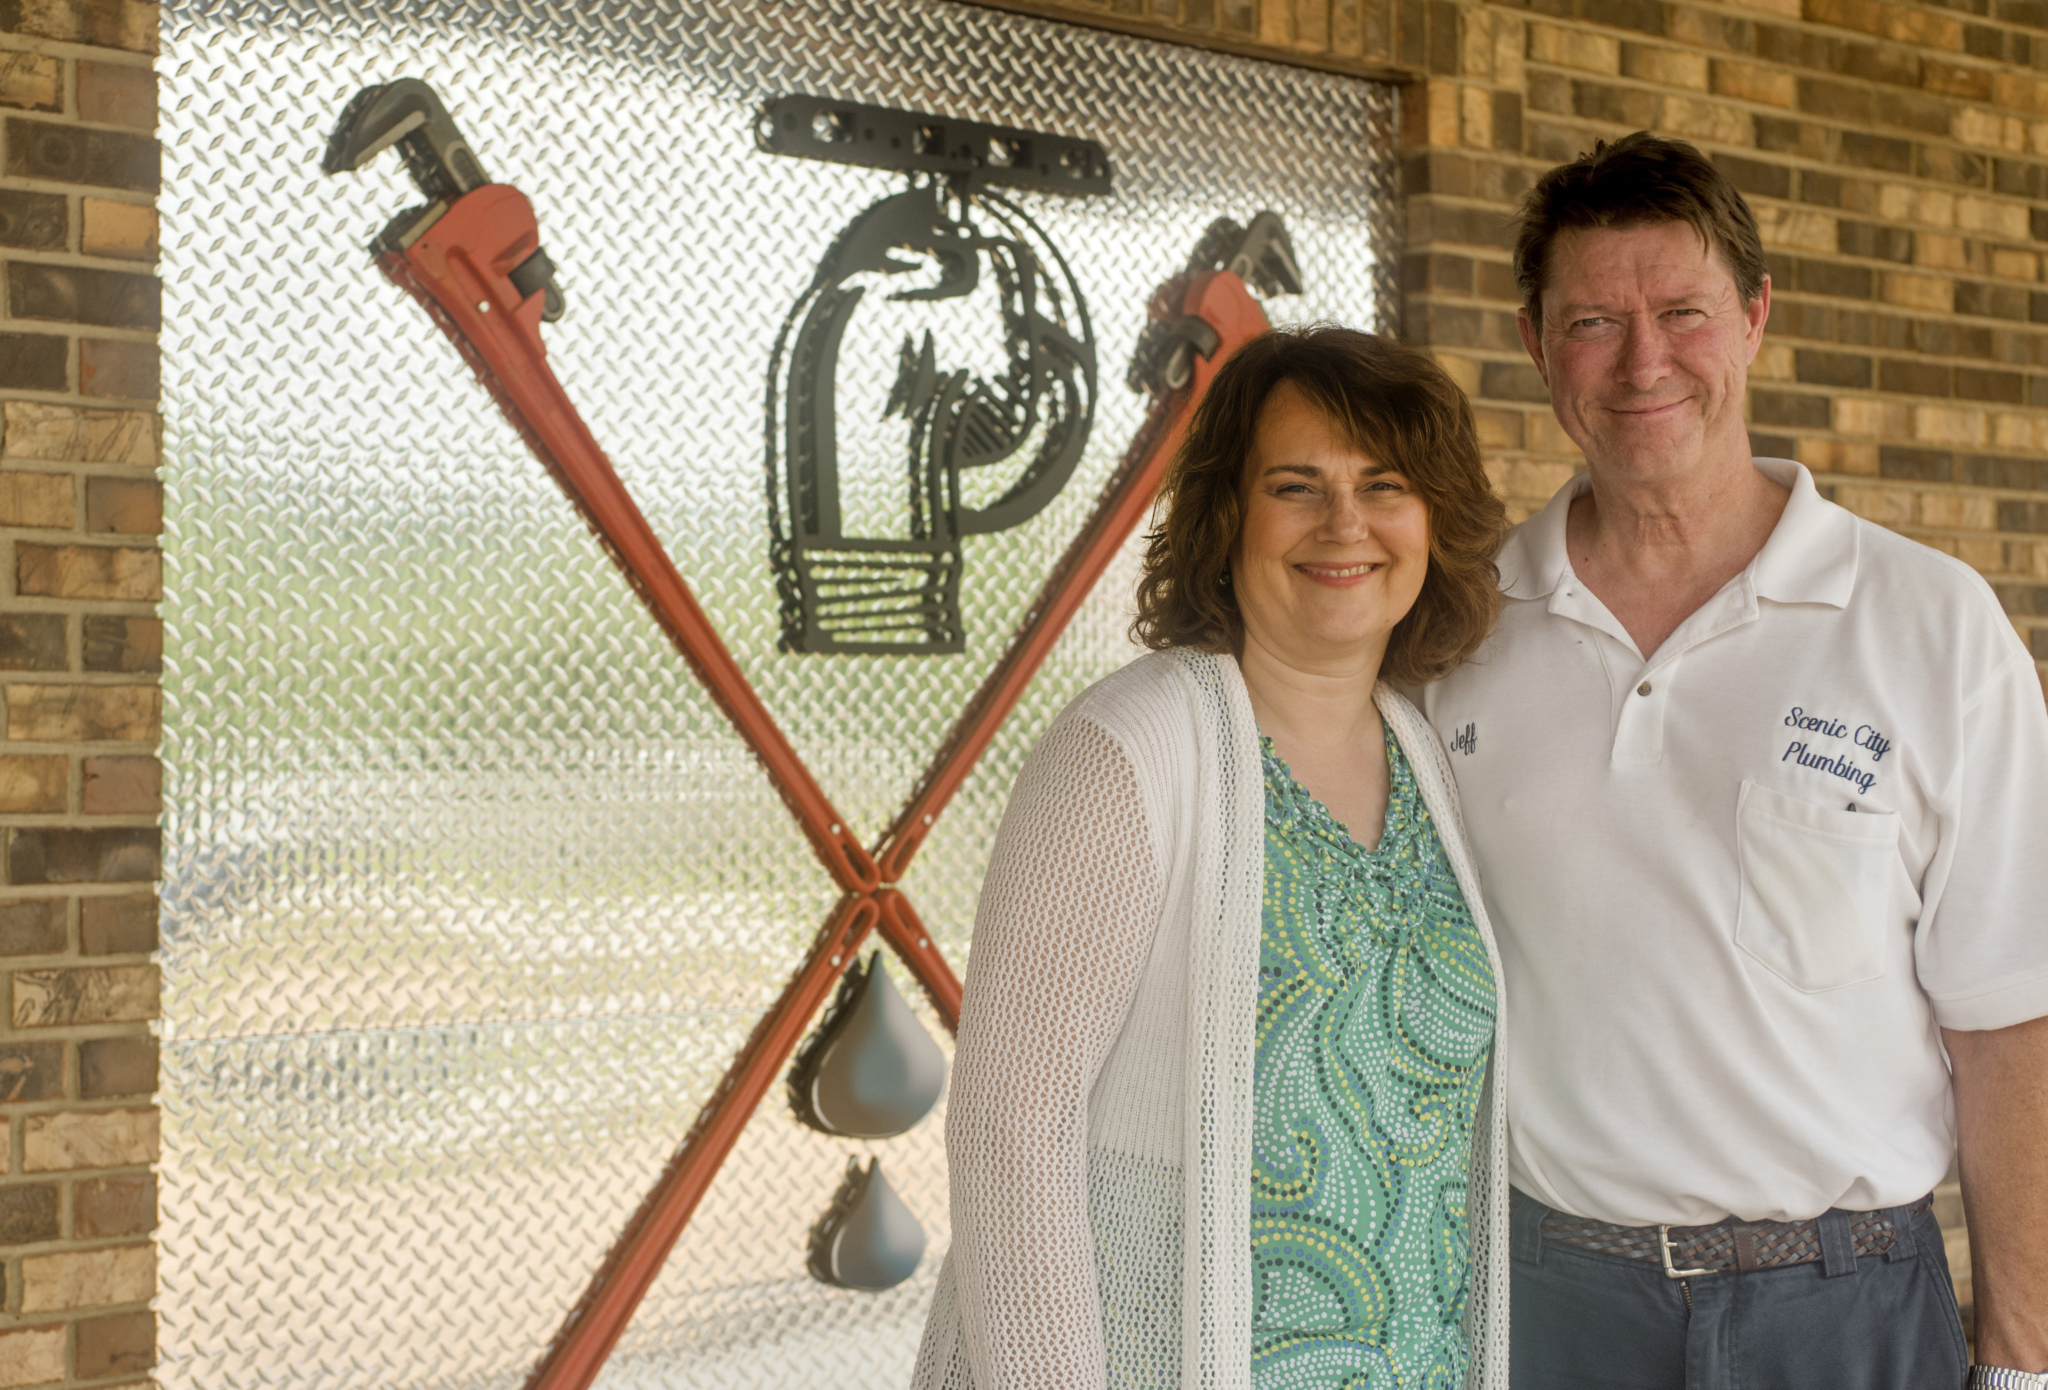 Jacqui and Jeff Logan, owners of Scenic City Plumbing in Hixson, Tennessee